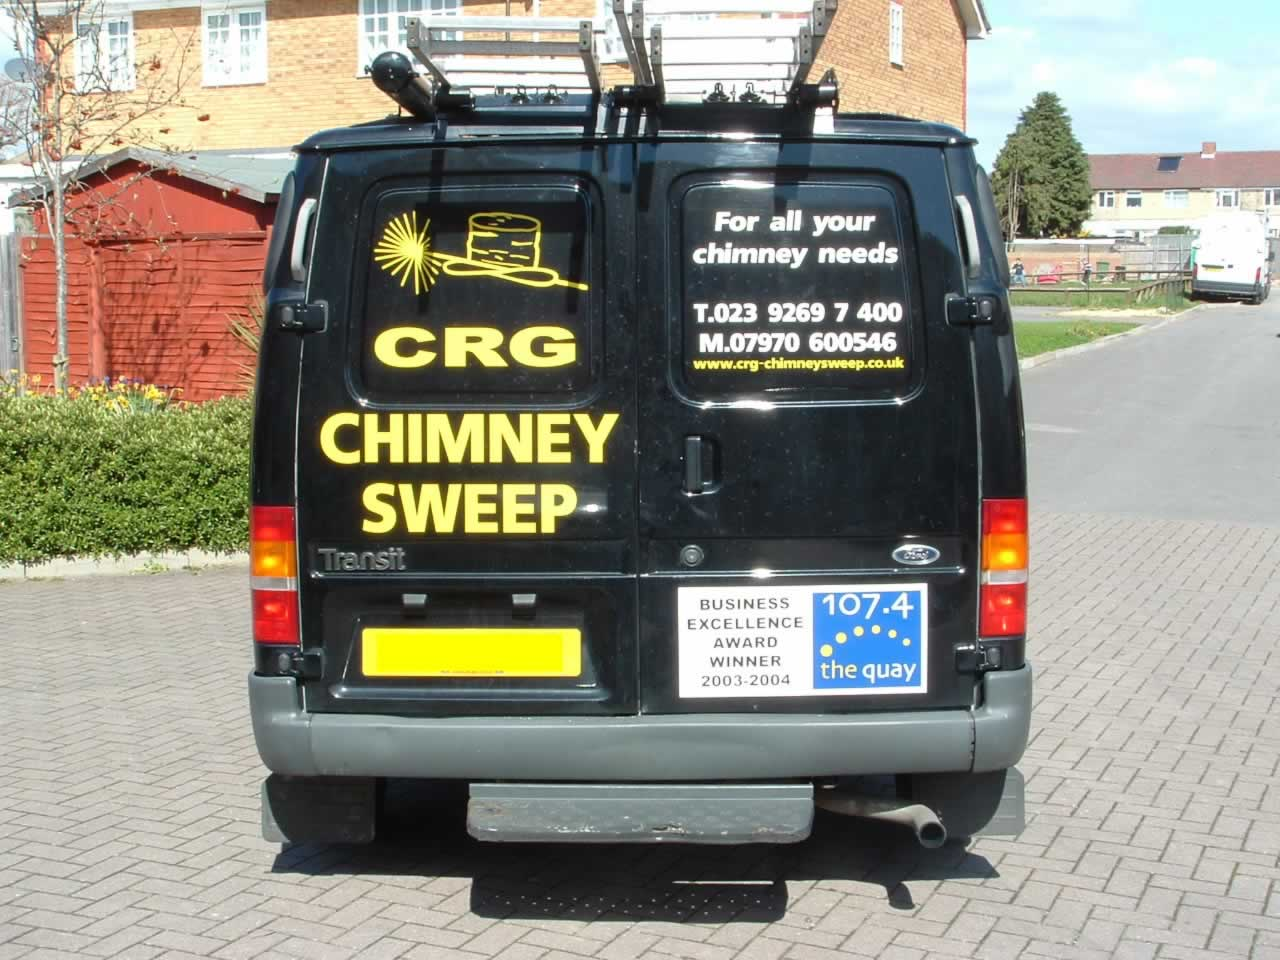 CRG's New Van Back